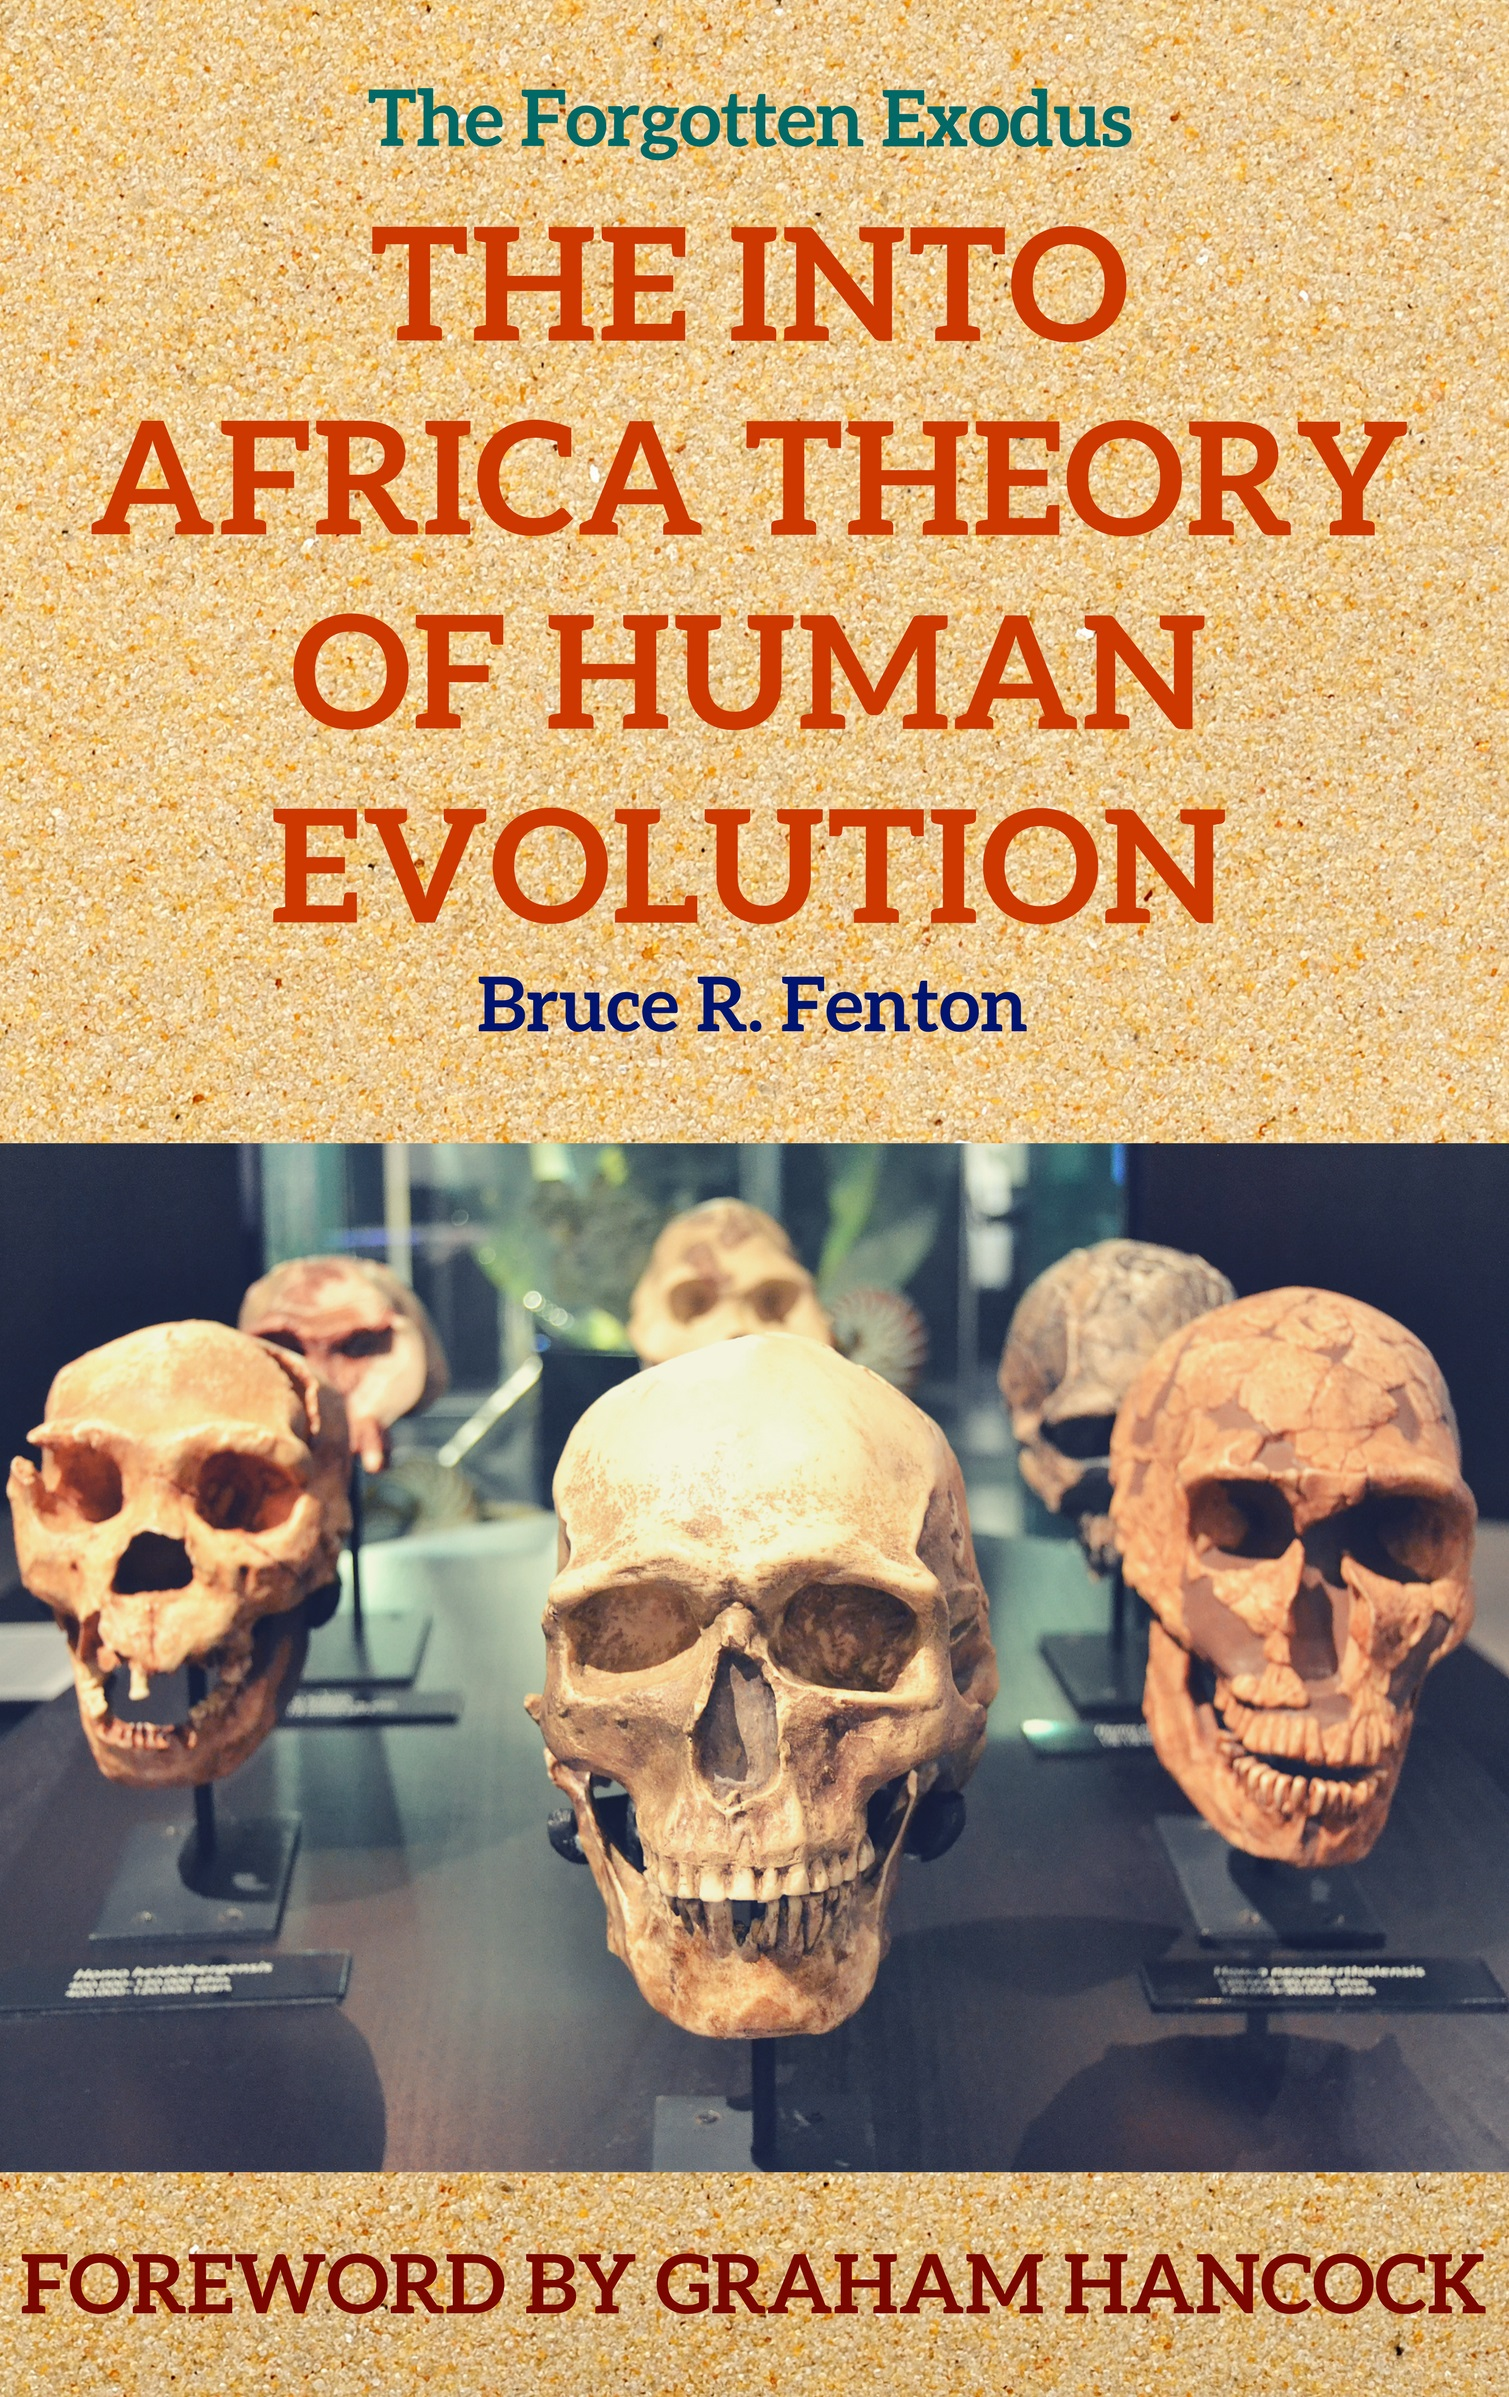 The Into Africa Theory